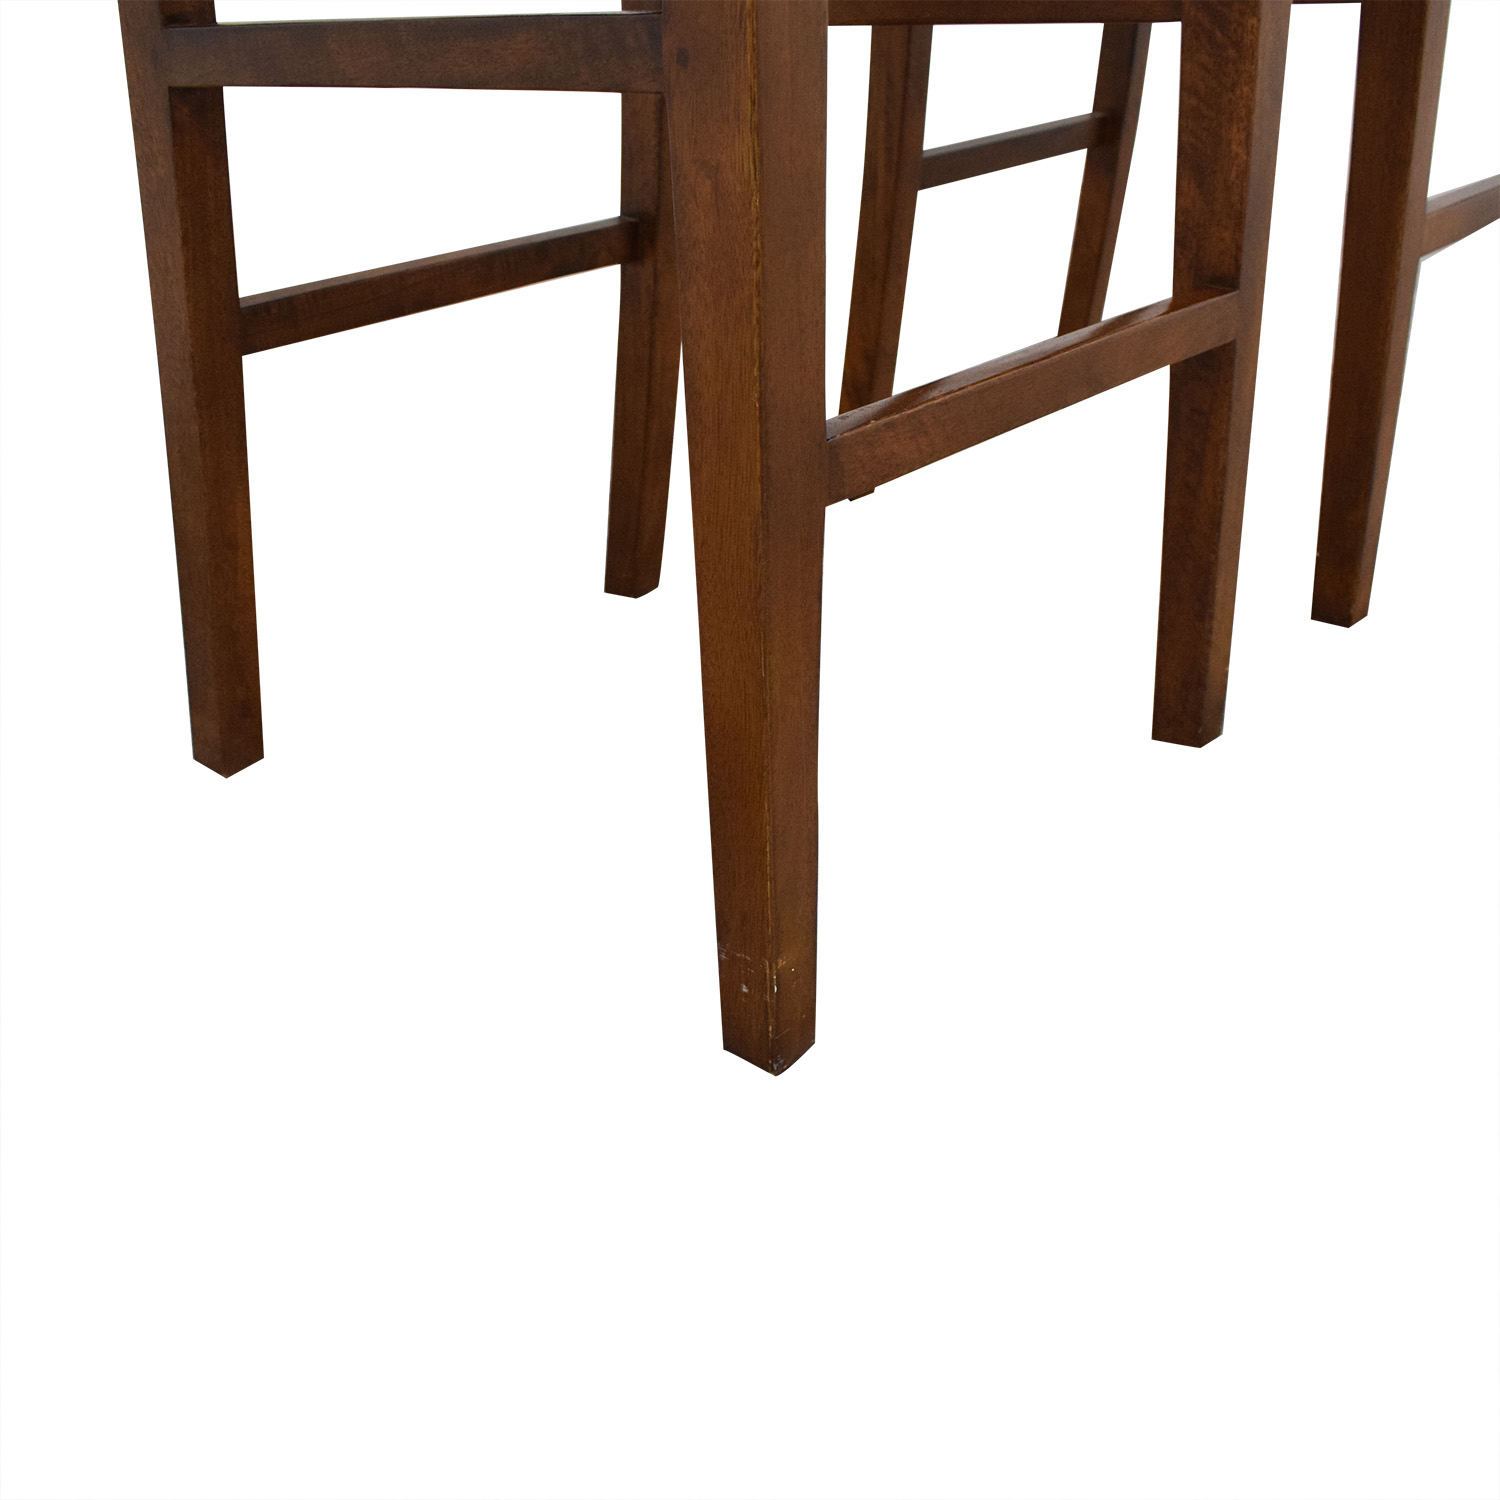 buy Crate and Barrel Counter Stools Crate & Barrel Stools